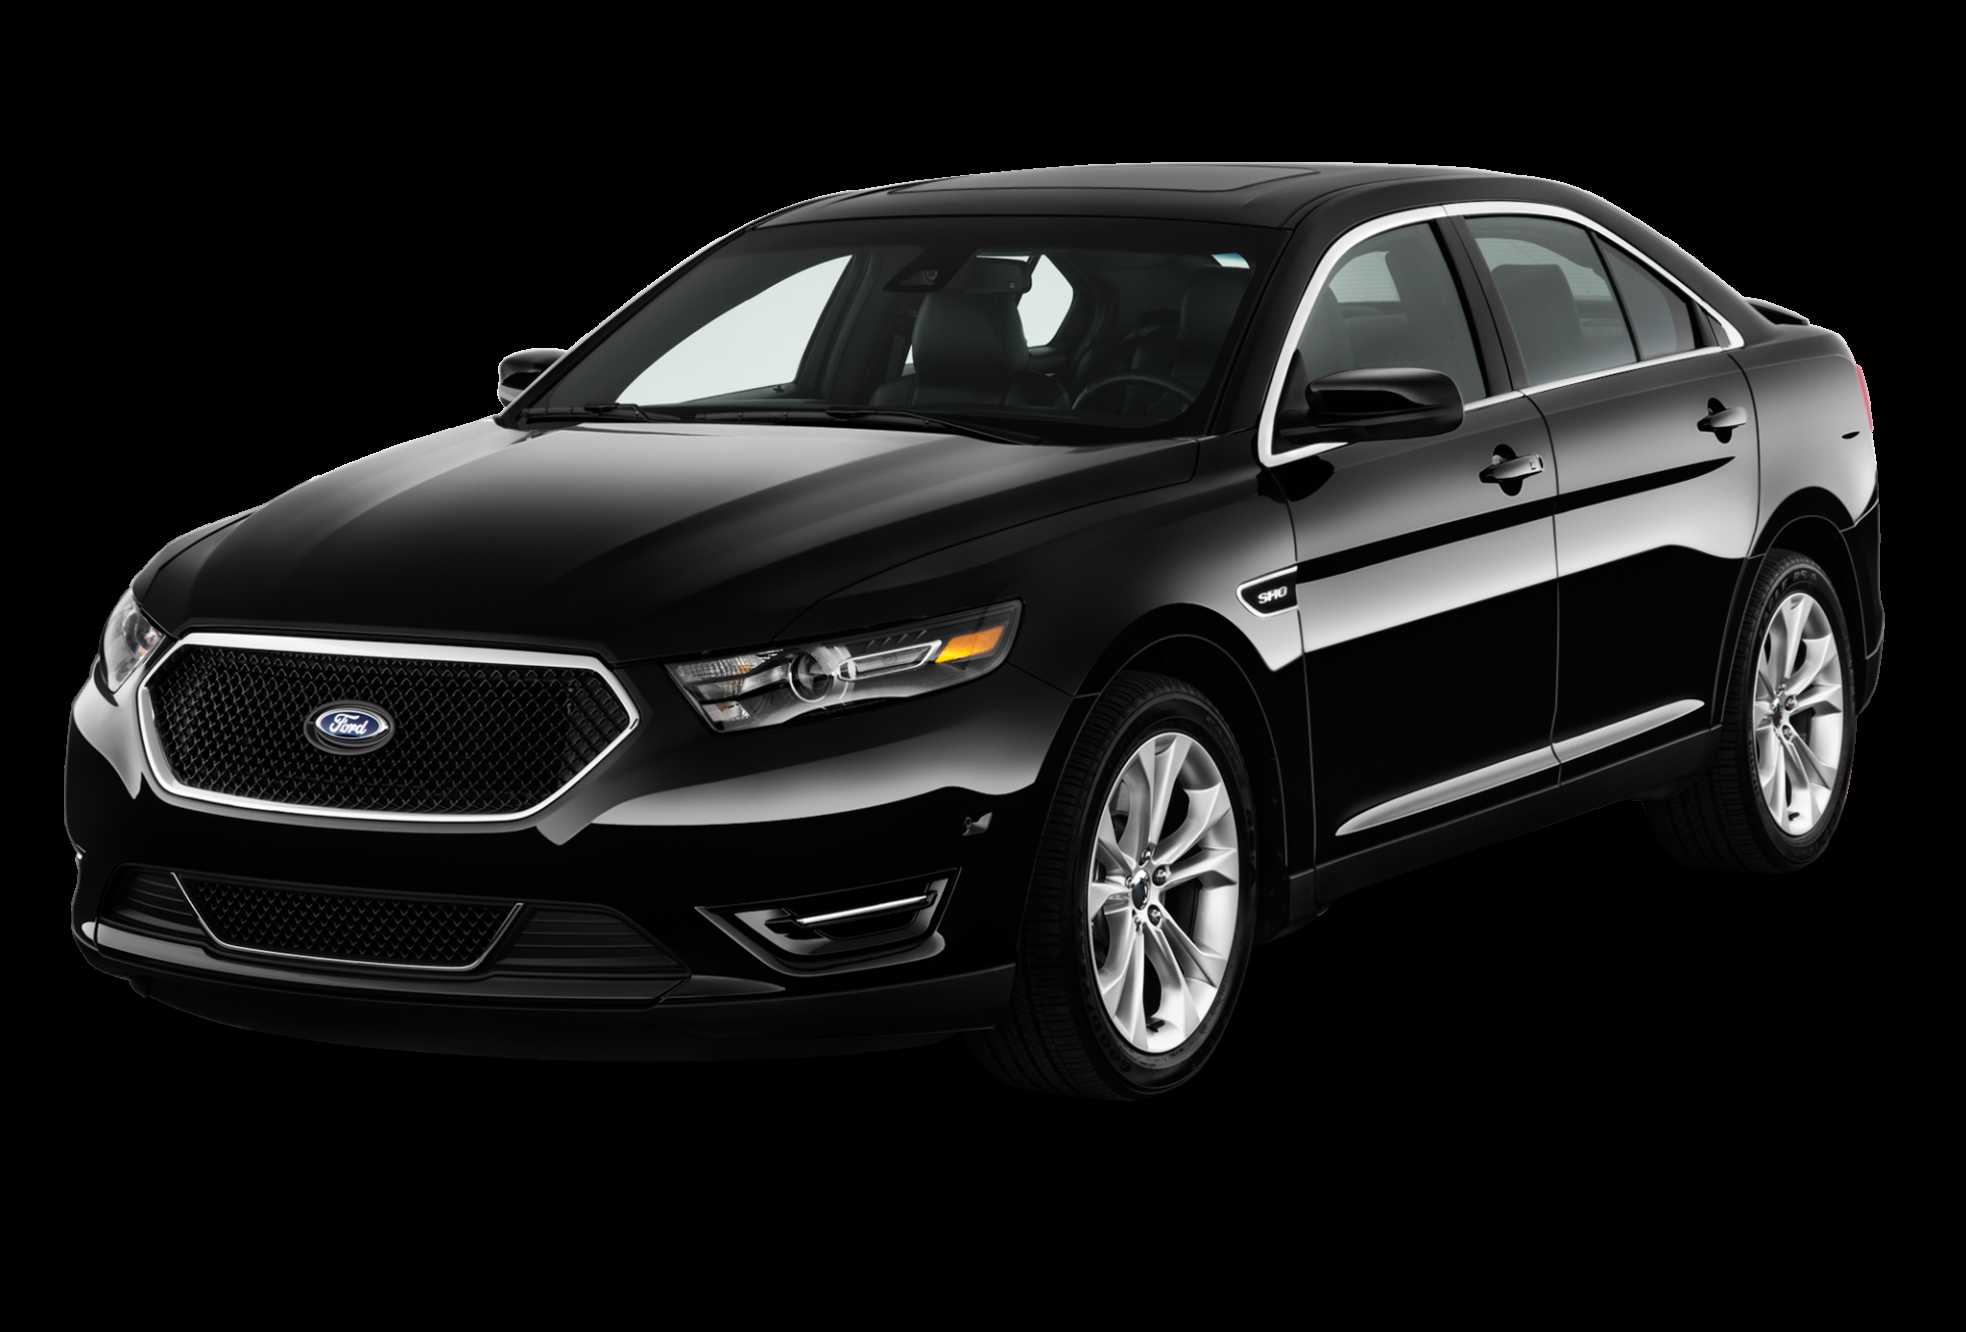 44 The Best 2020 Ford Taurus Specs